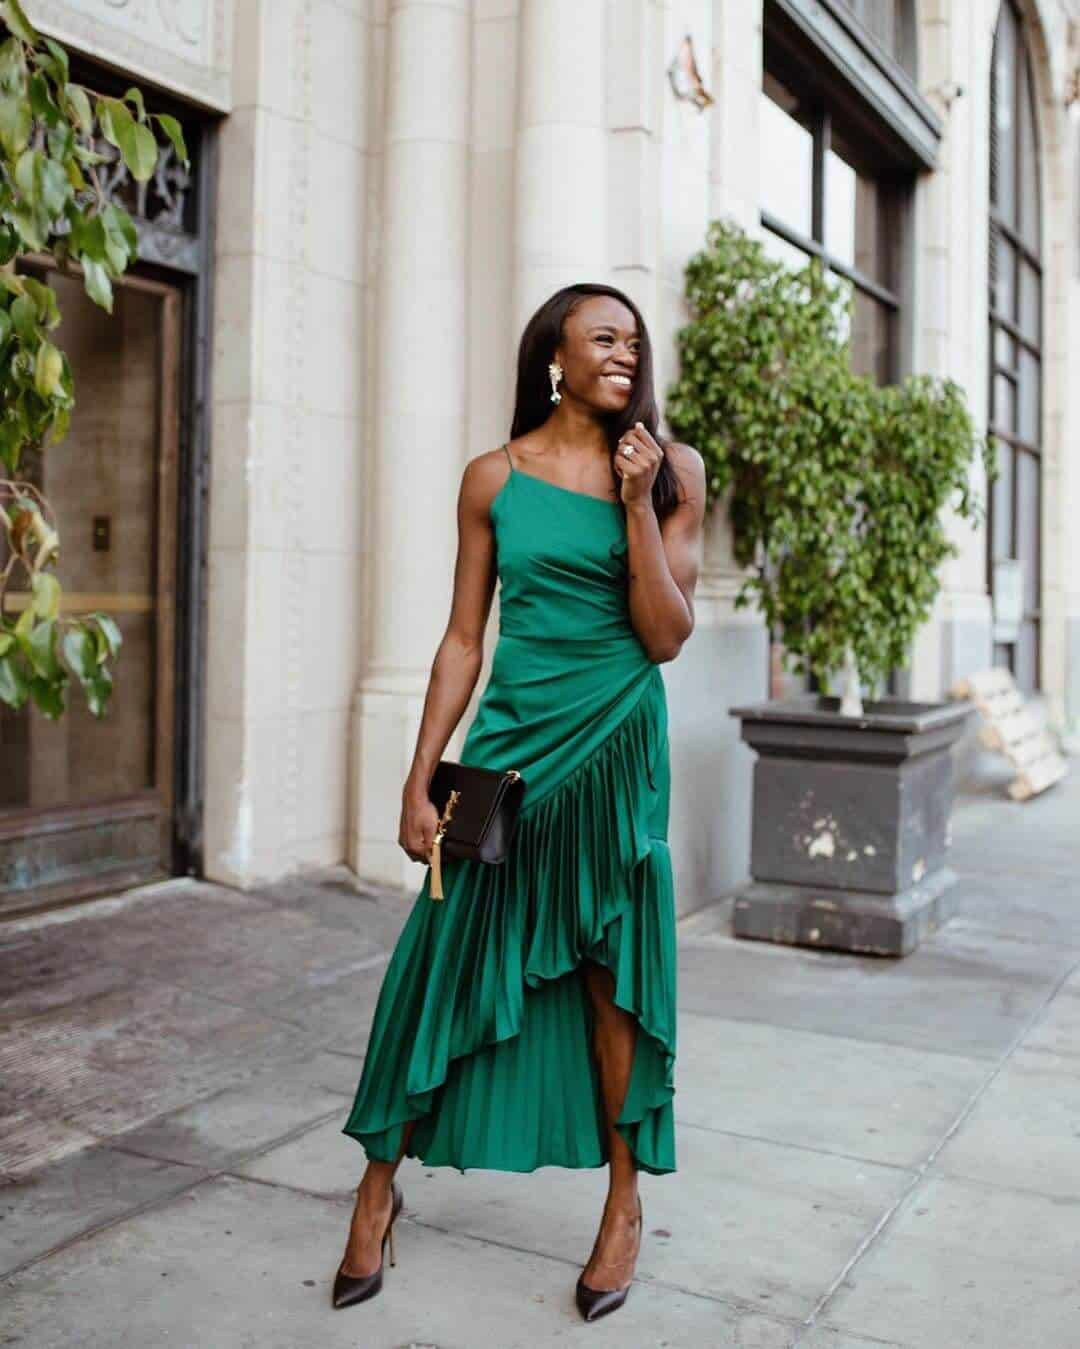 Wedding Guest Outfits Emerald Green Pleated Dress Flor Et. Al What to Wear to a Wedding as a Guest Jasmine Blocker (1)